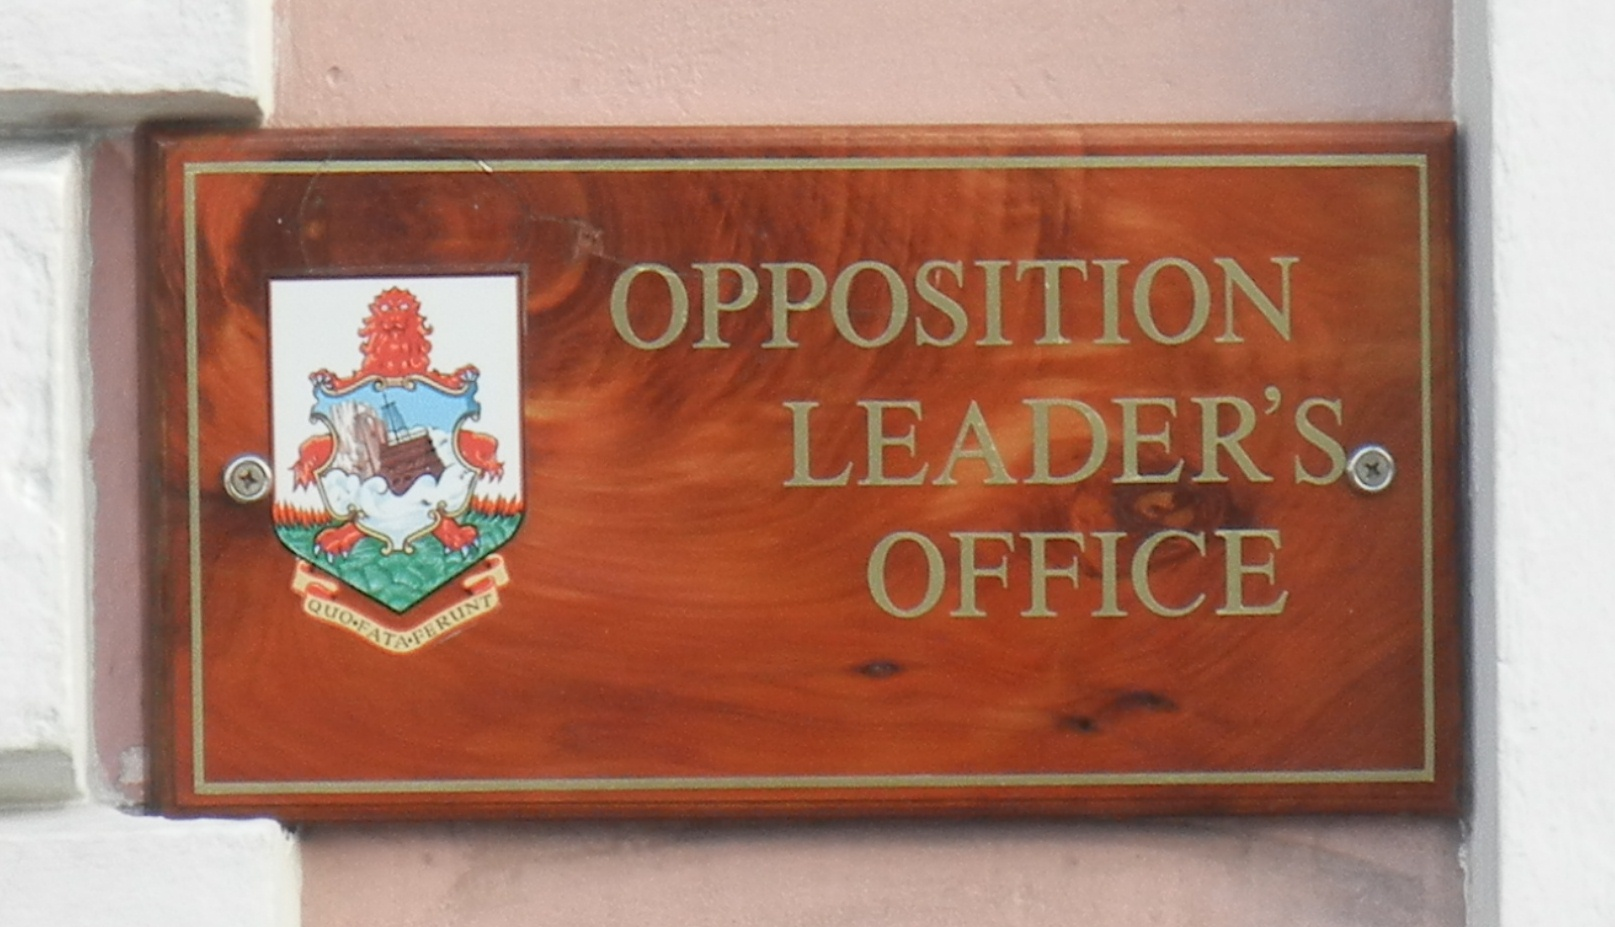 Opposition Leader's Office